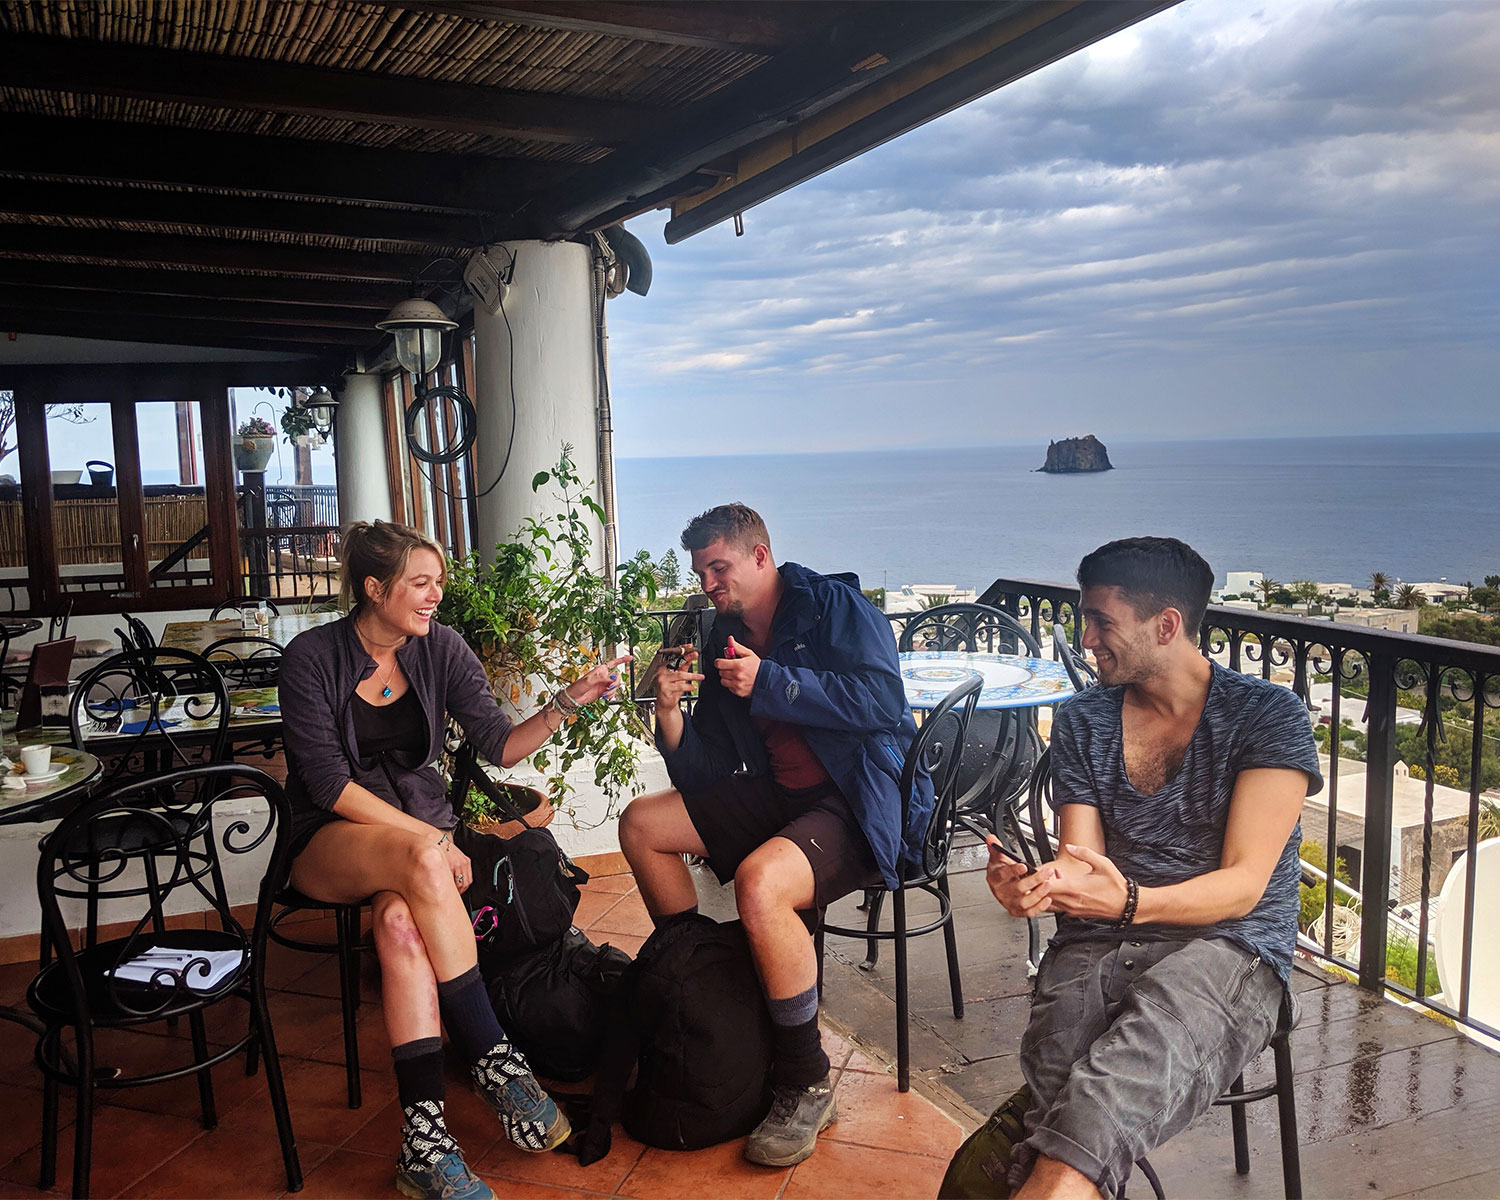 Prepping our bodies with espresso and cigars before our hike. Power supplements.